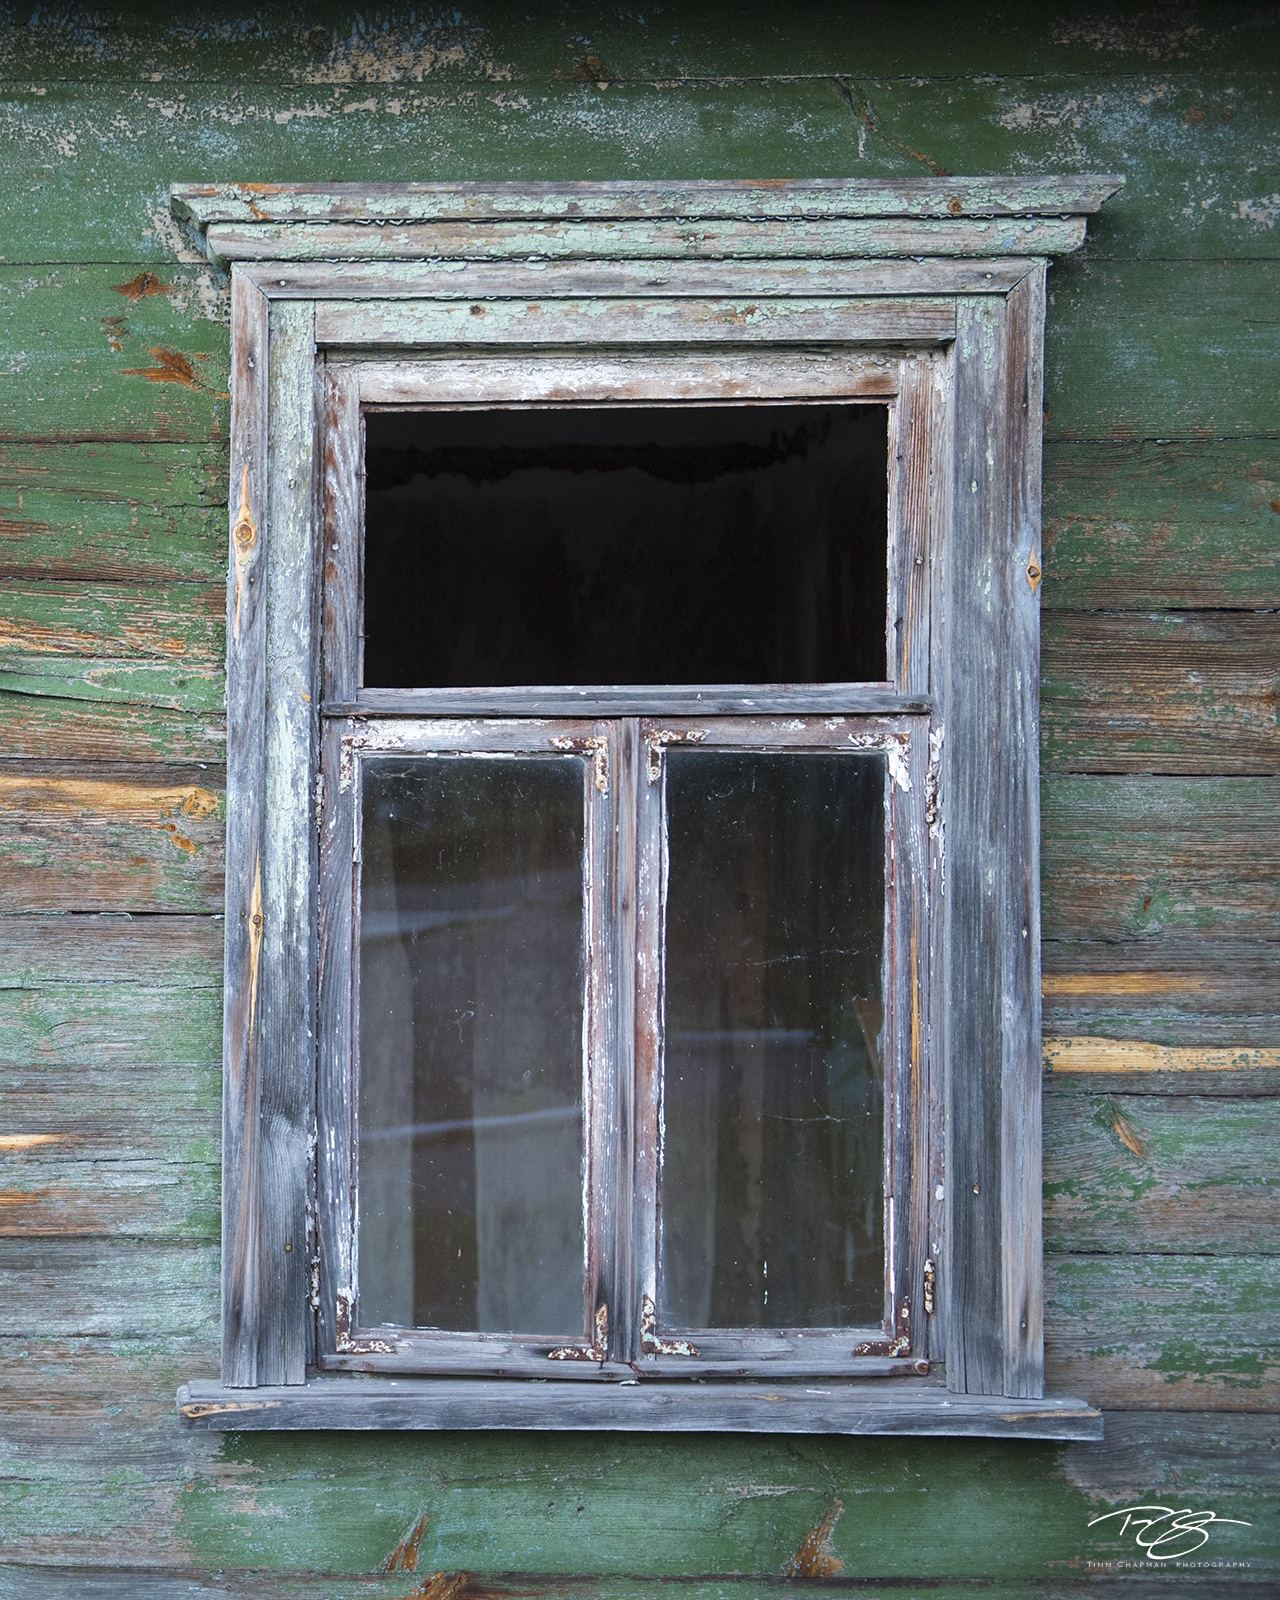 chernobyl, chornobyl, pripyat, exclusion zone, abandoned, forgotten, wasteland, radioactive, decay, peeling paint, window, reclamation, green, wood, collapse, door, glass, orange, dust, dirty, weather, photo